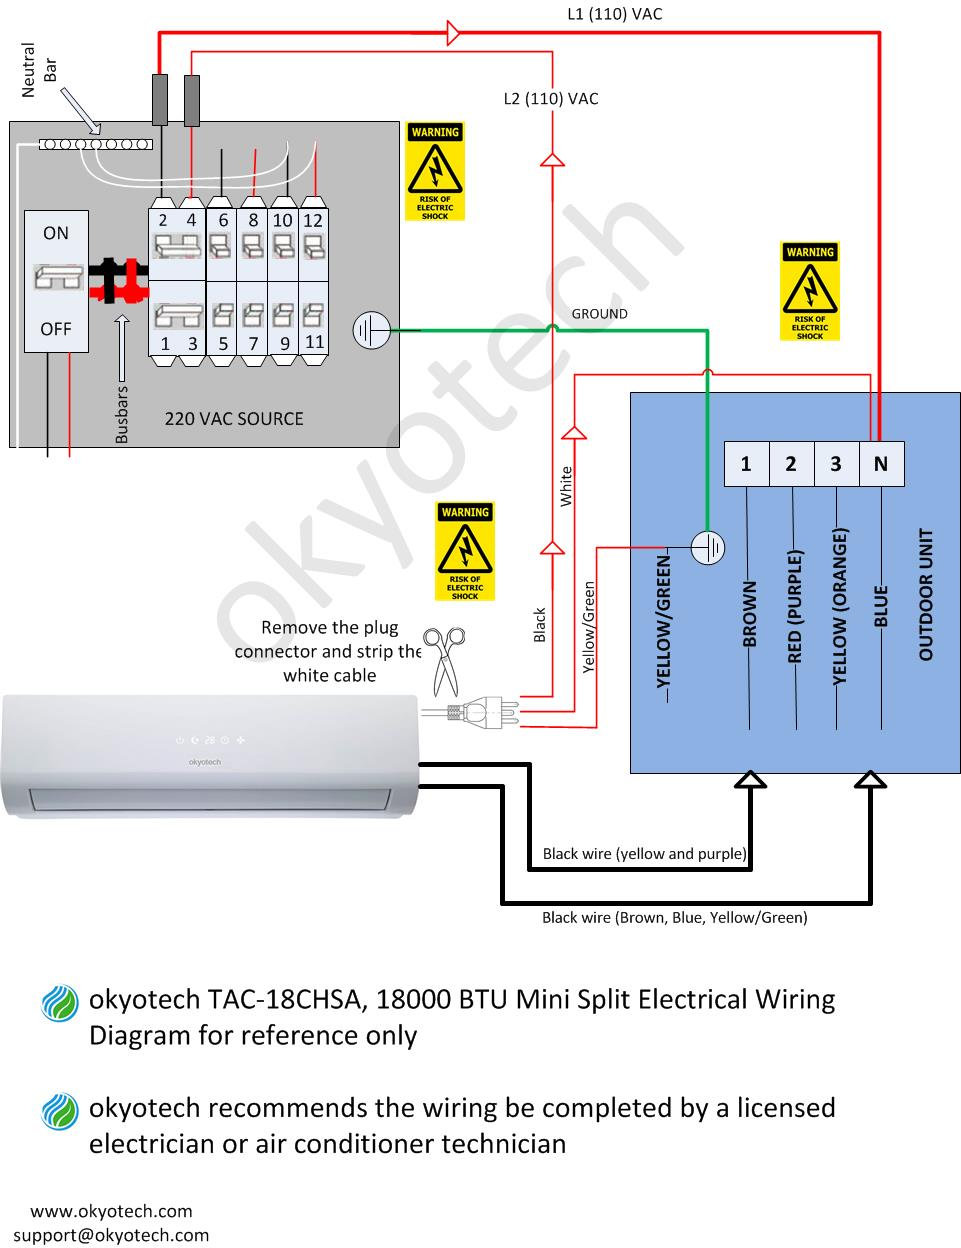 Electrical Wiring Diagrams Okyotech